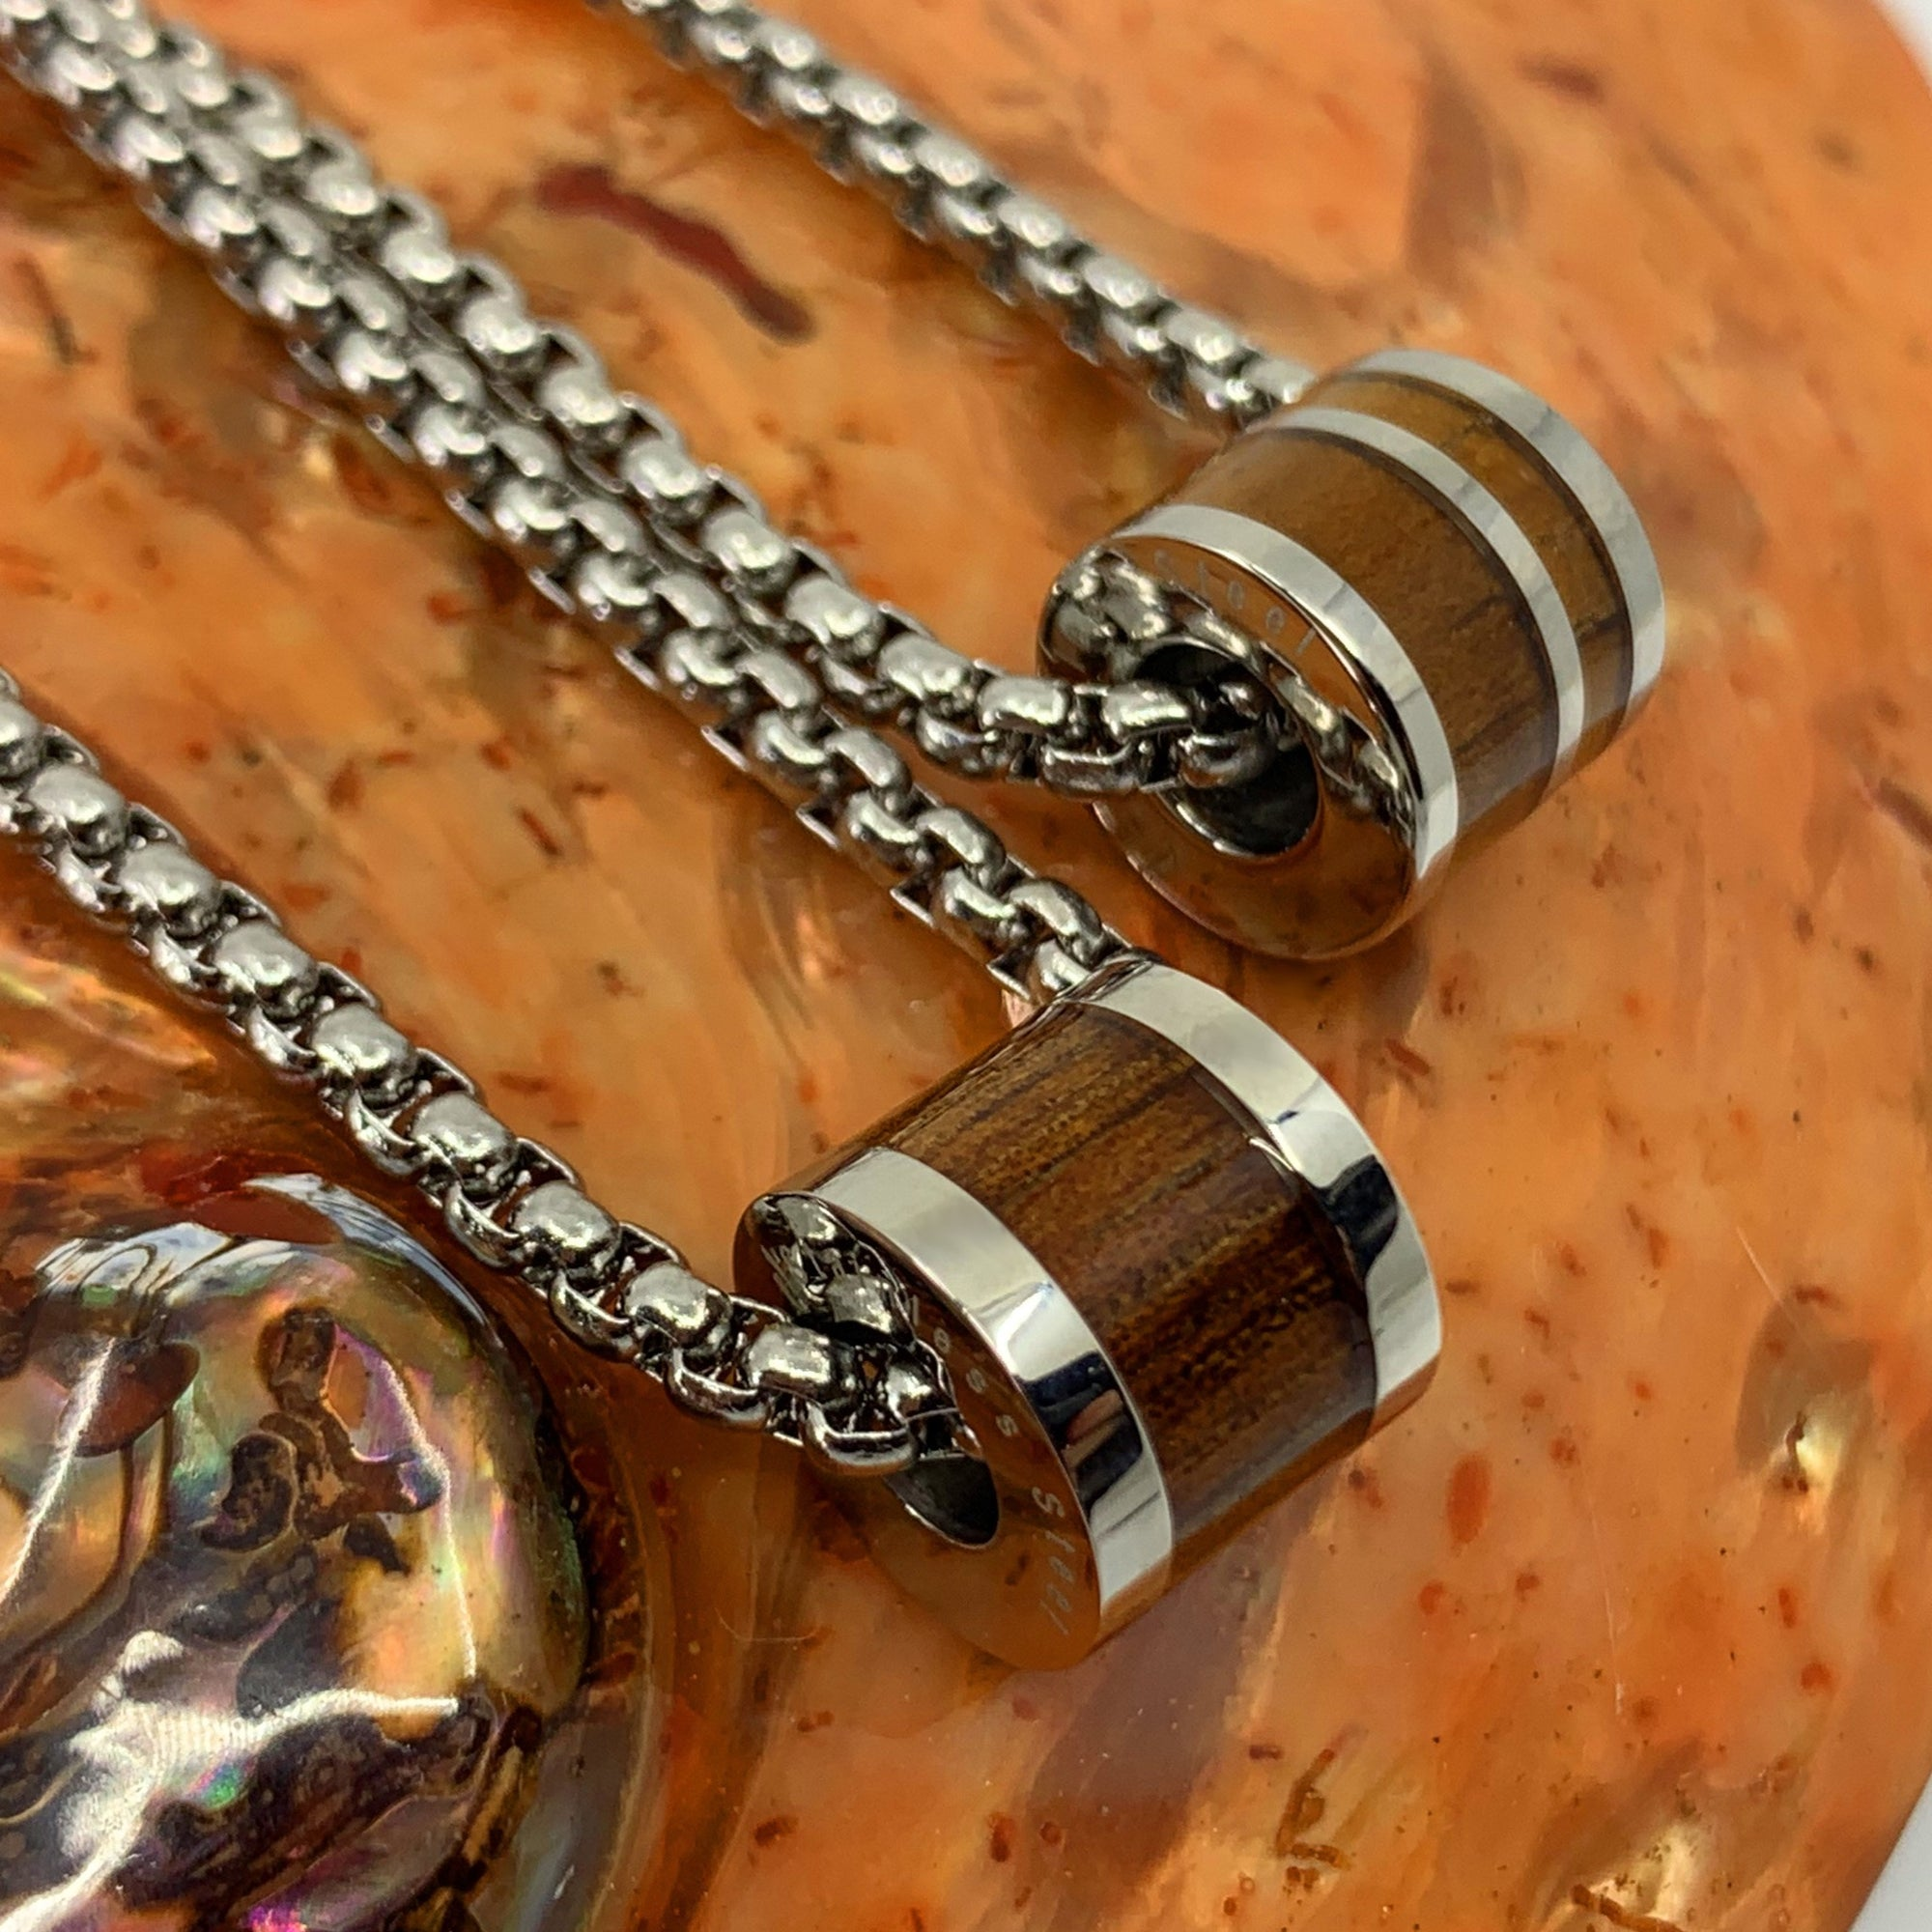 Koa Stainless Steel Barrel Pendant